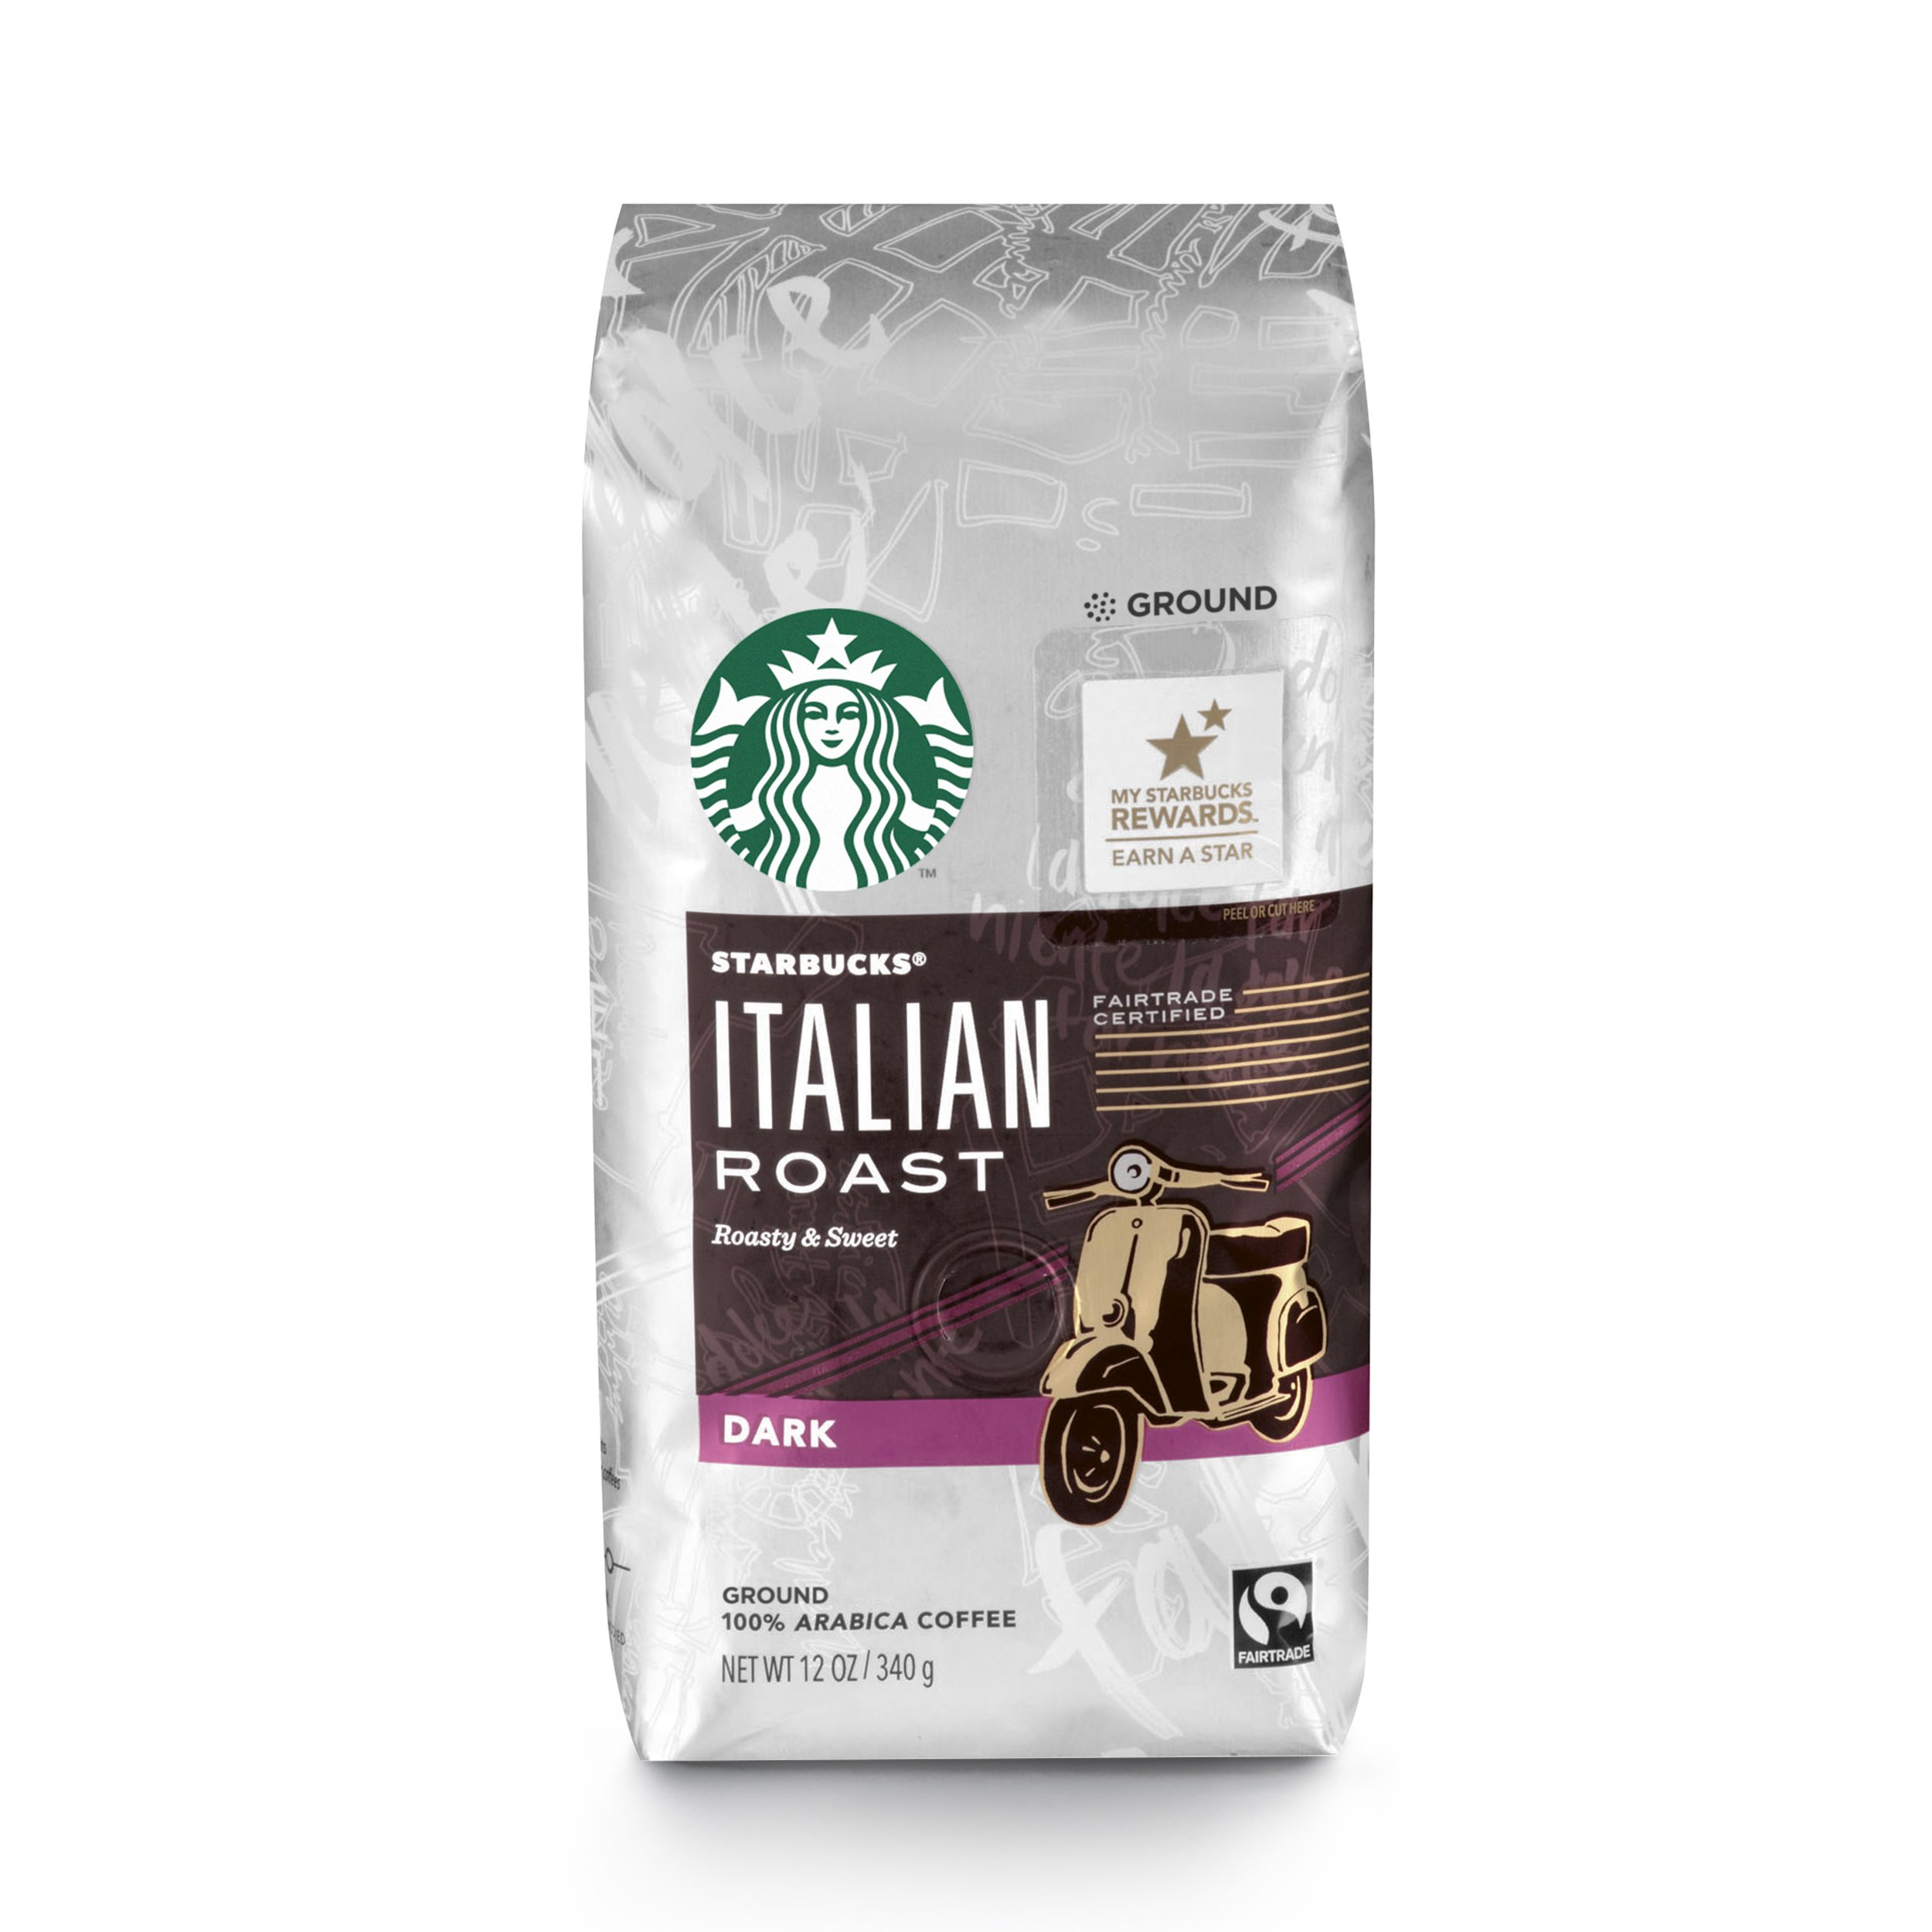 Starbucks Italian Roast Dark Roast Ground Coffee, 12-Ounce (Pack of 6) by Starbucks